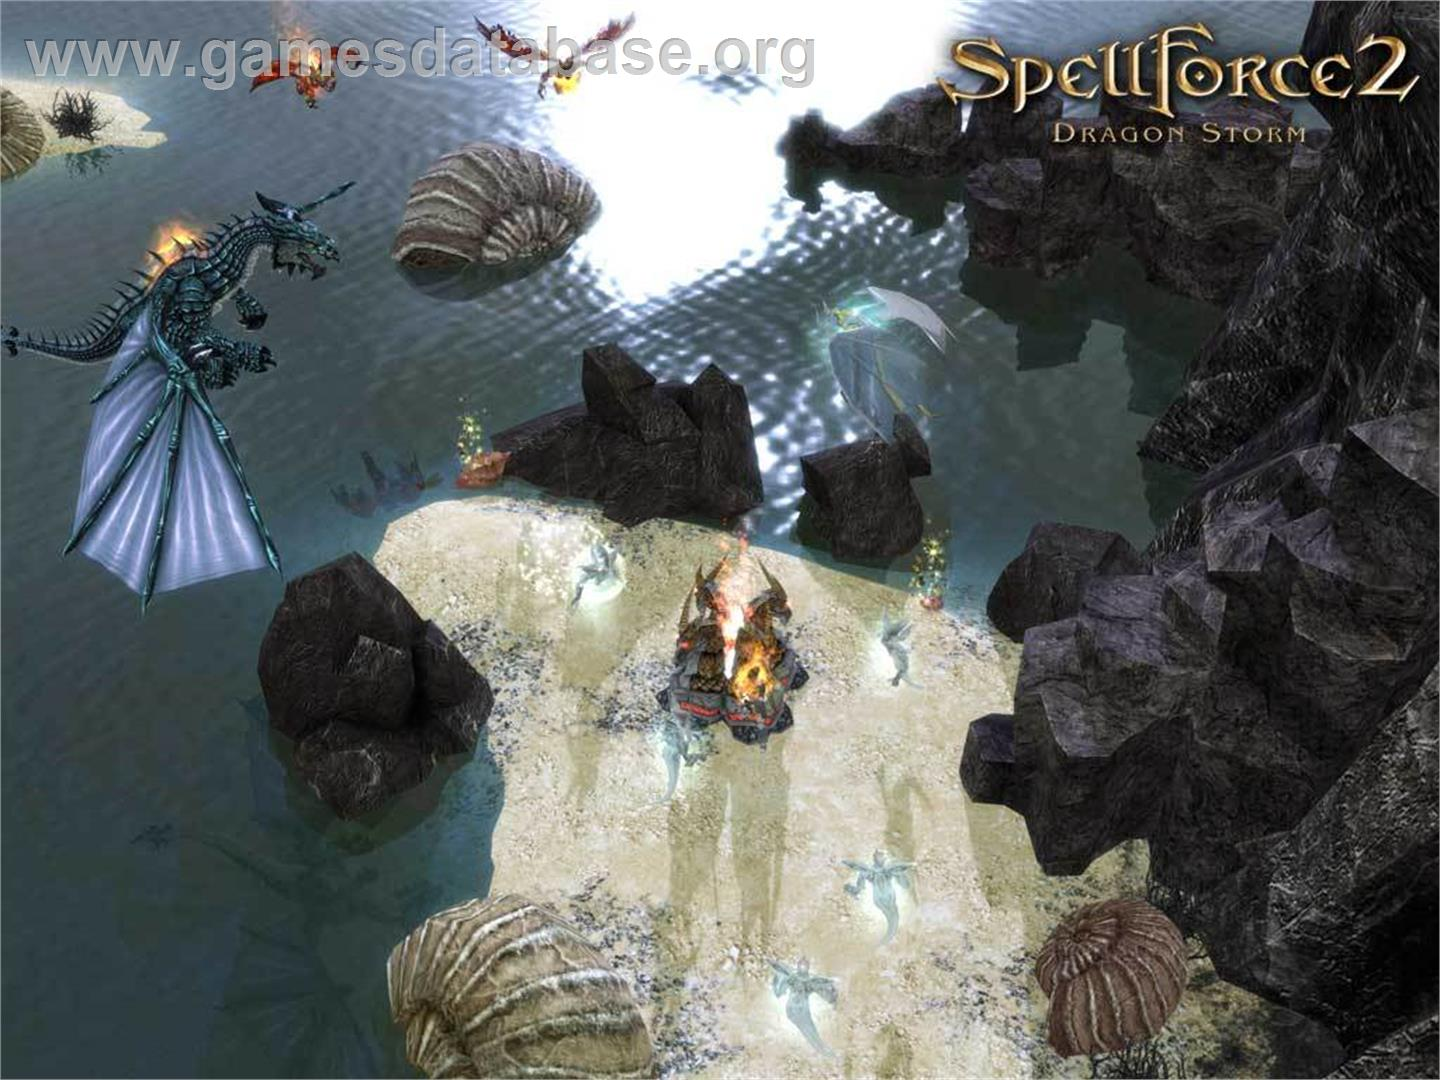 Spellforce 2: Gold Edition - Valve Steam - Artwork - In Game